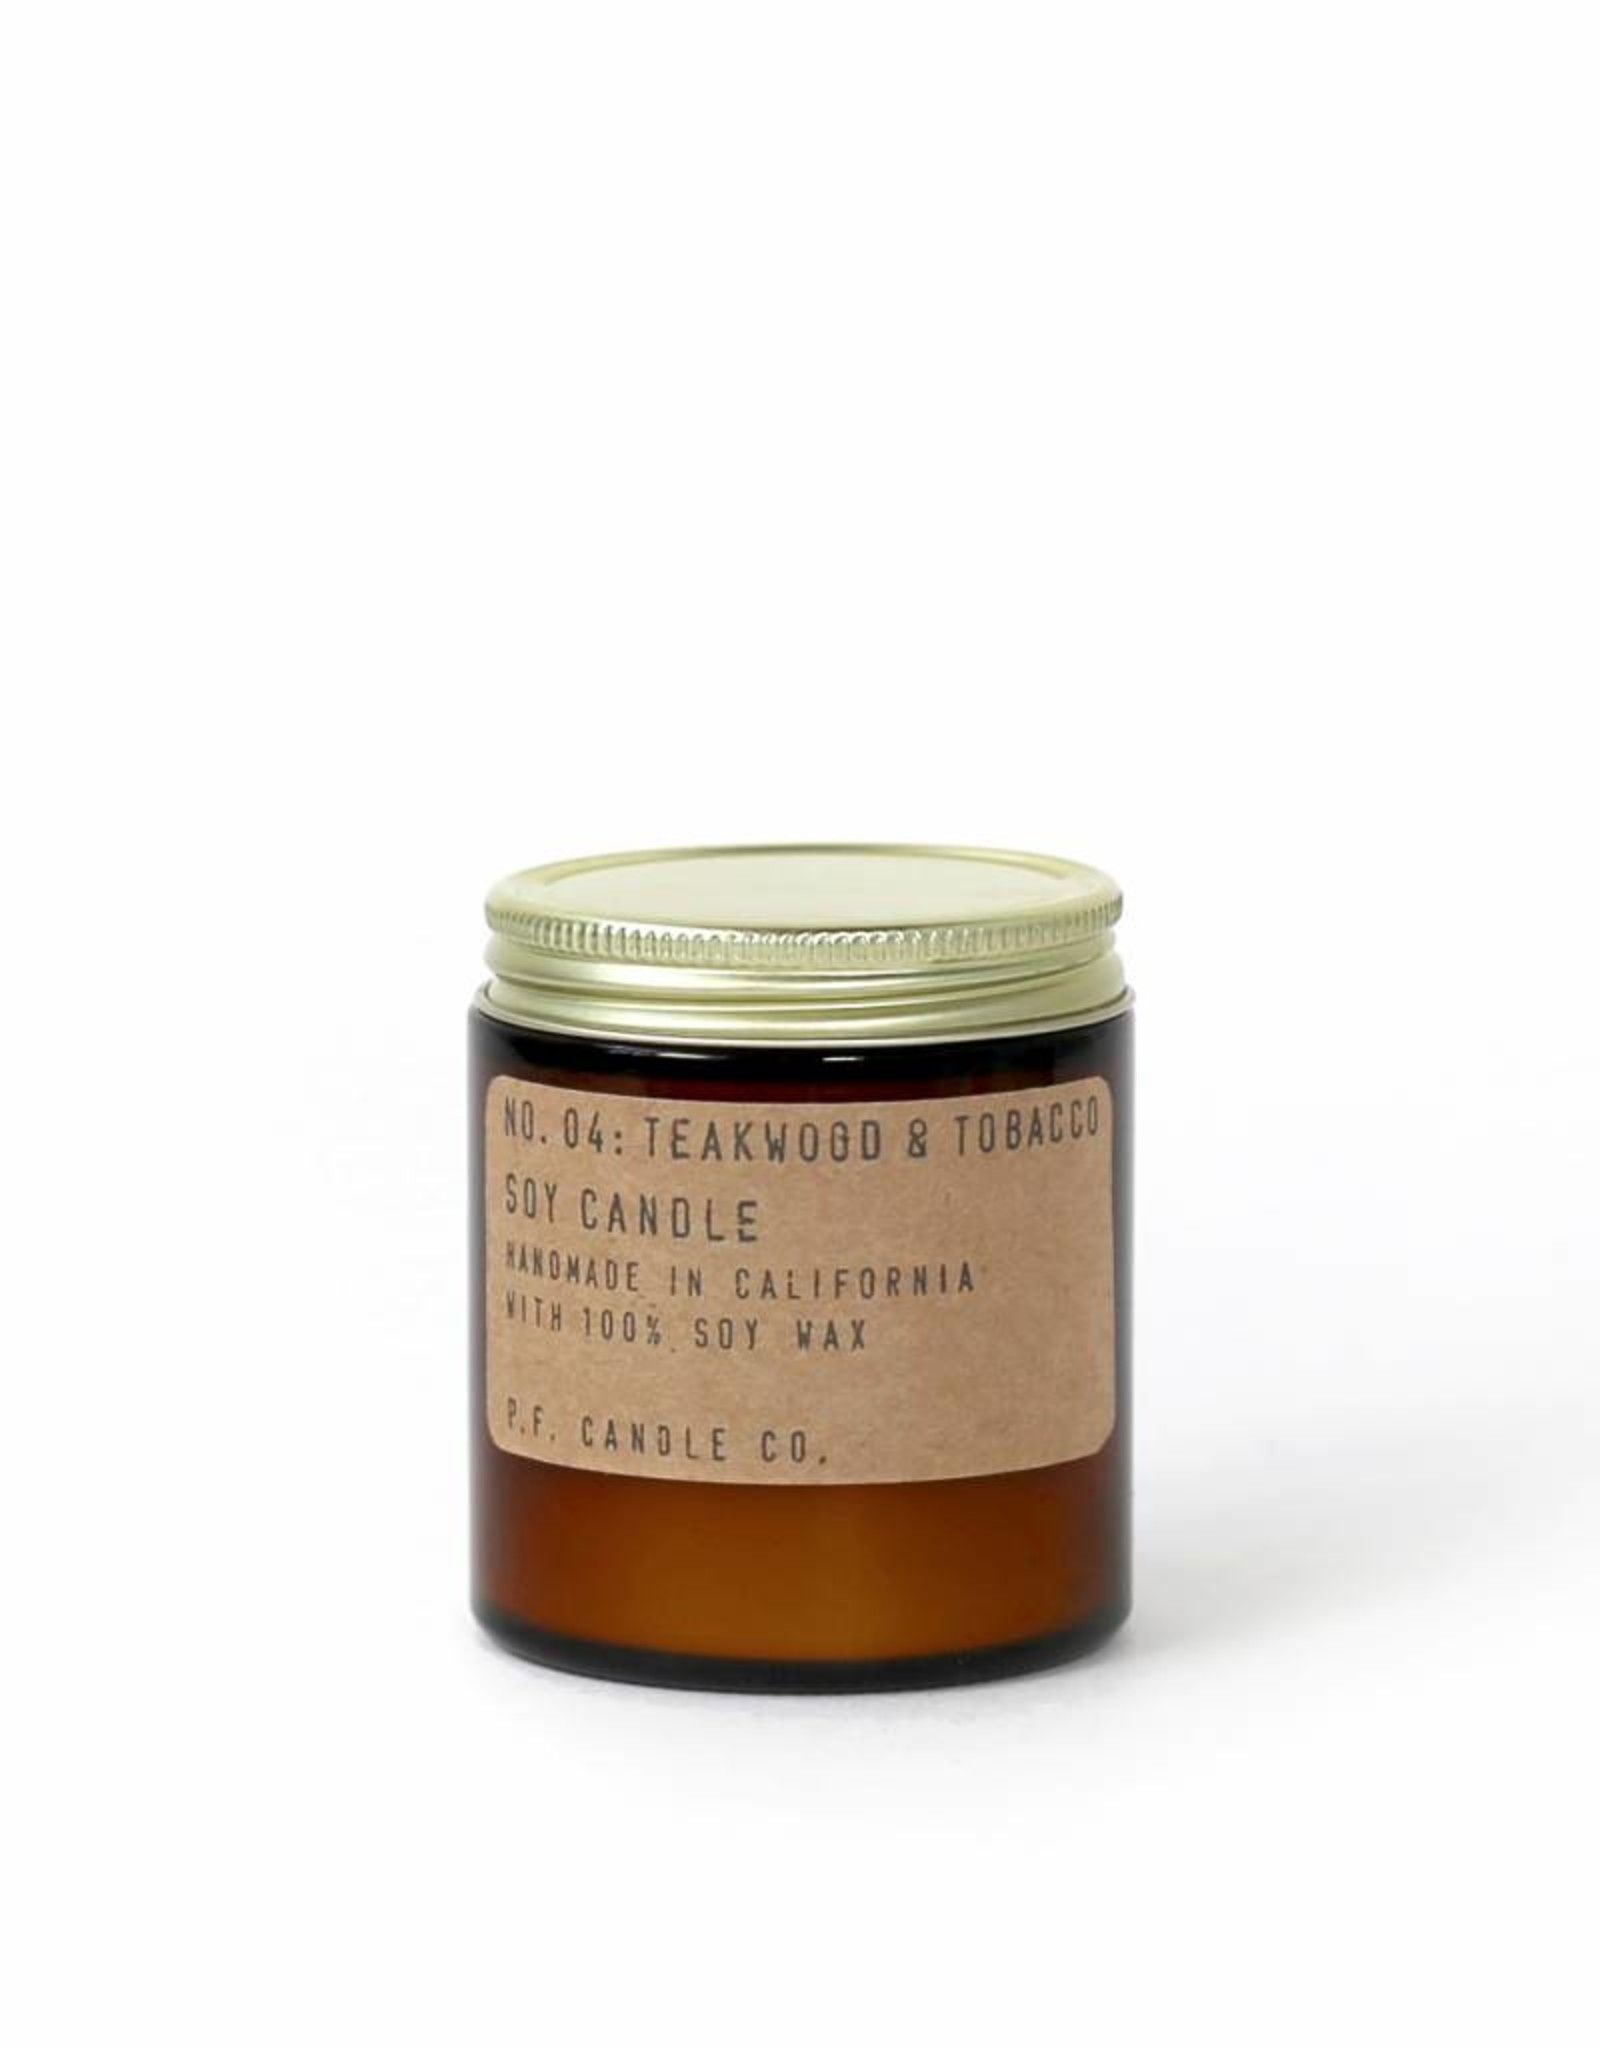 P.F.Candle & Co 7.2oz Teakwood and Tobacco No 4 Soy Wax Scented Candle